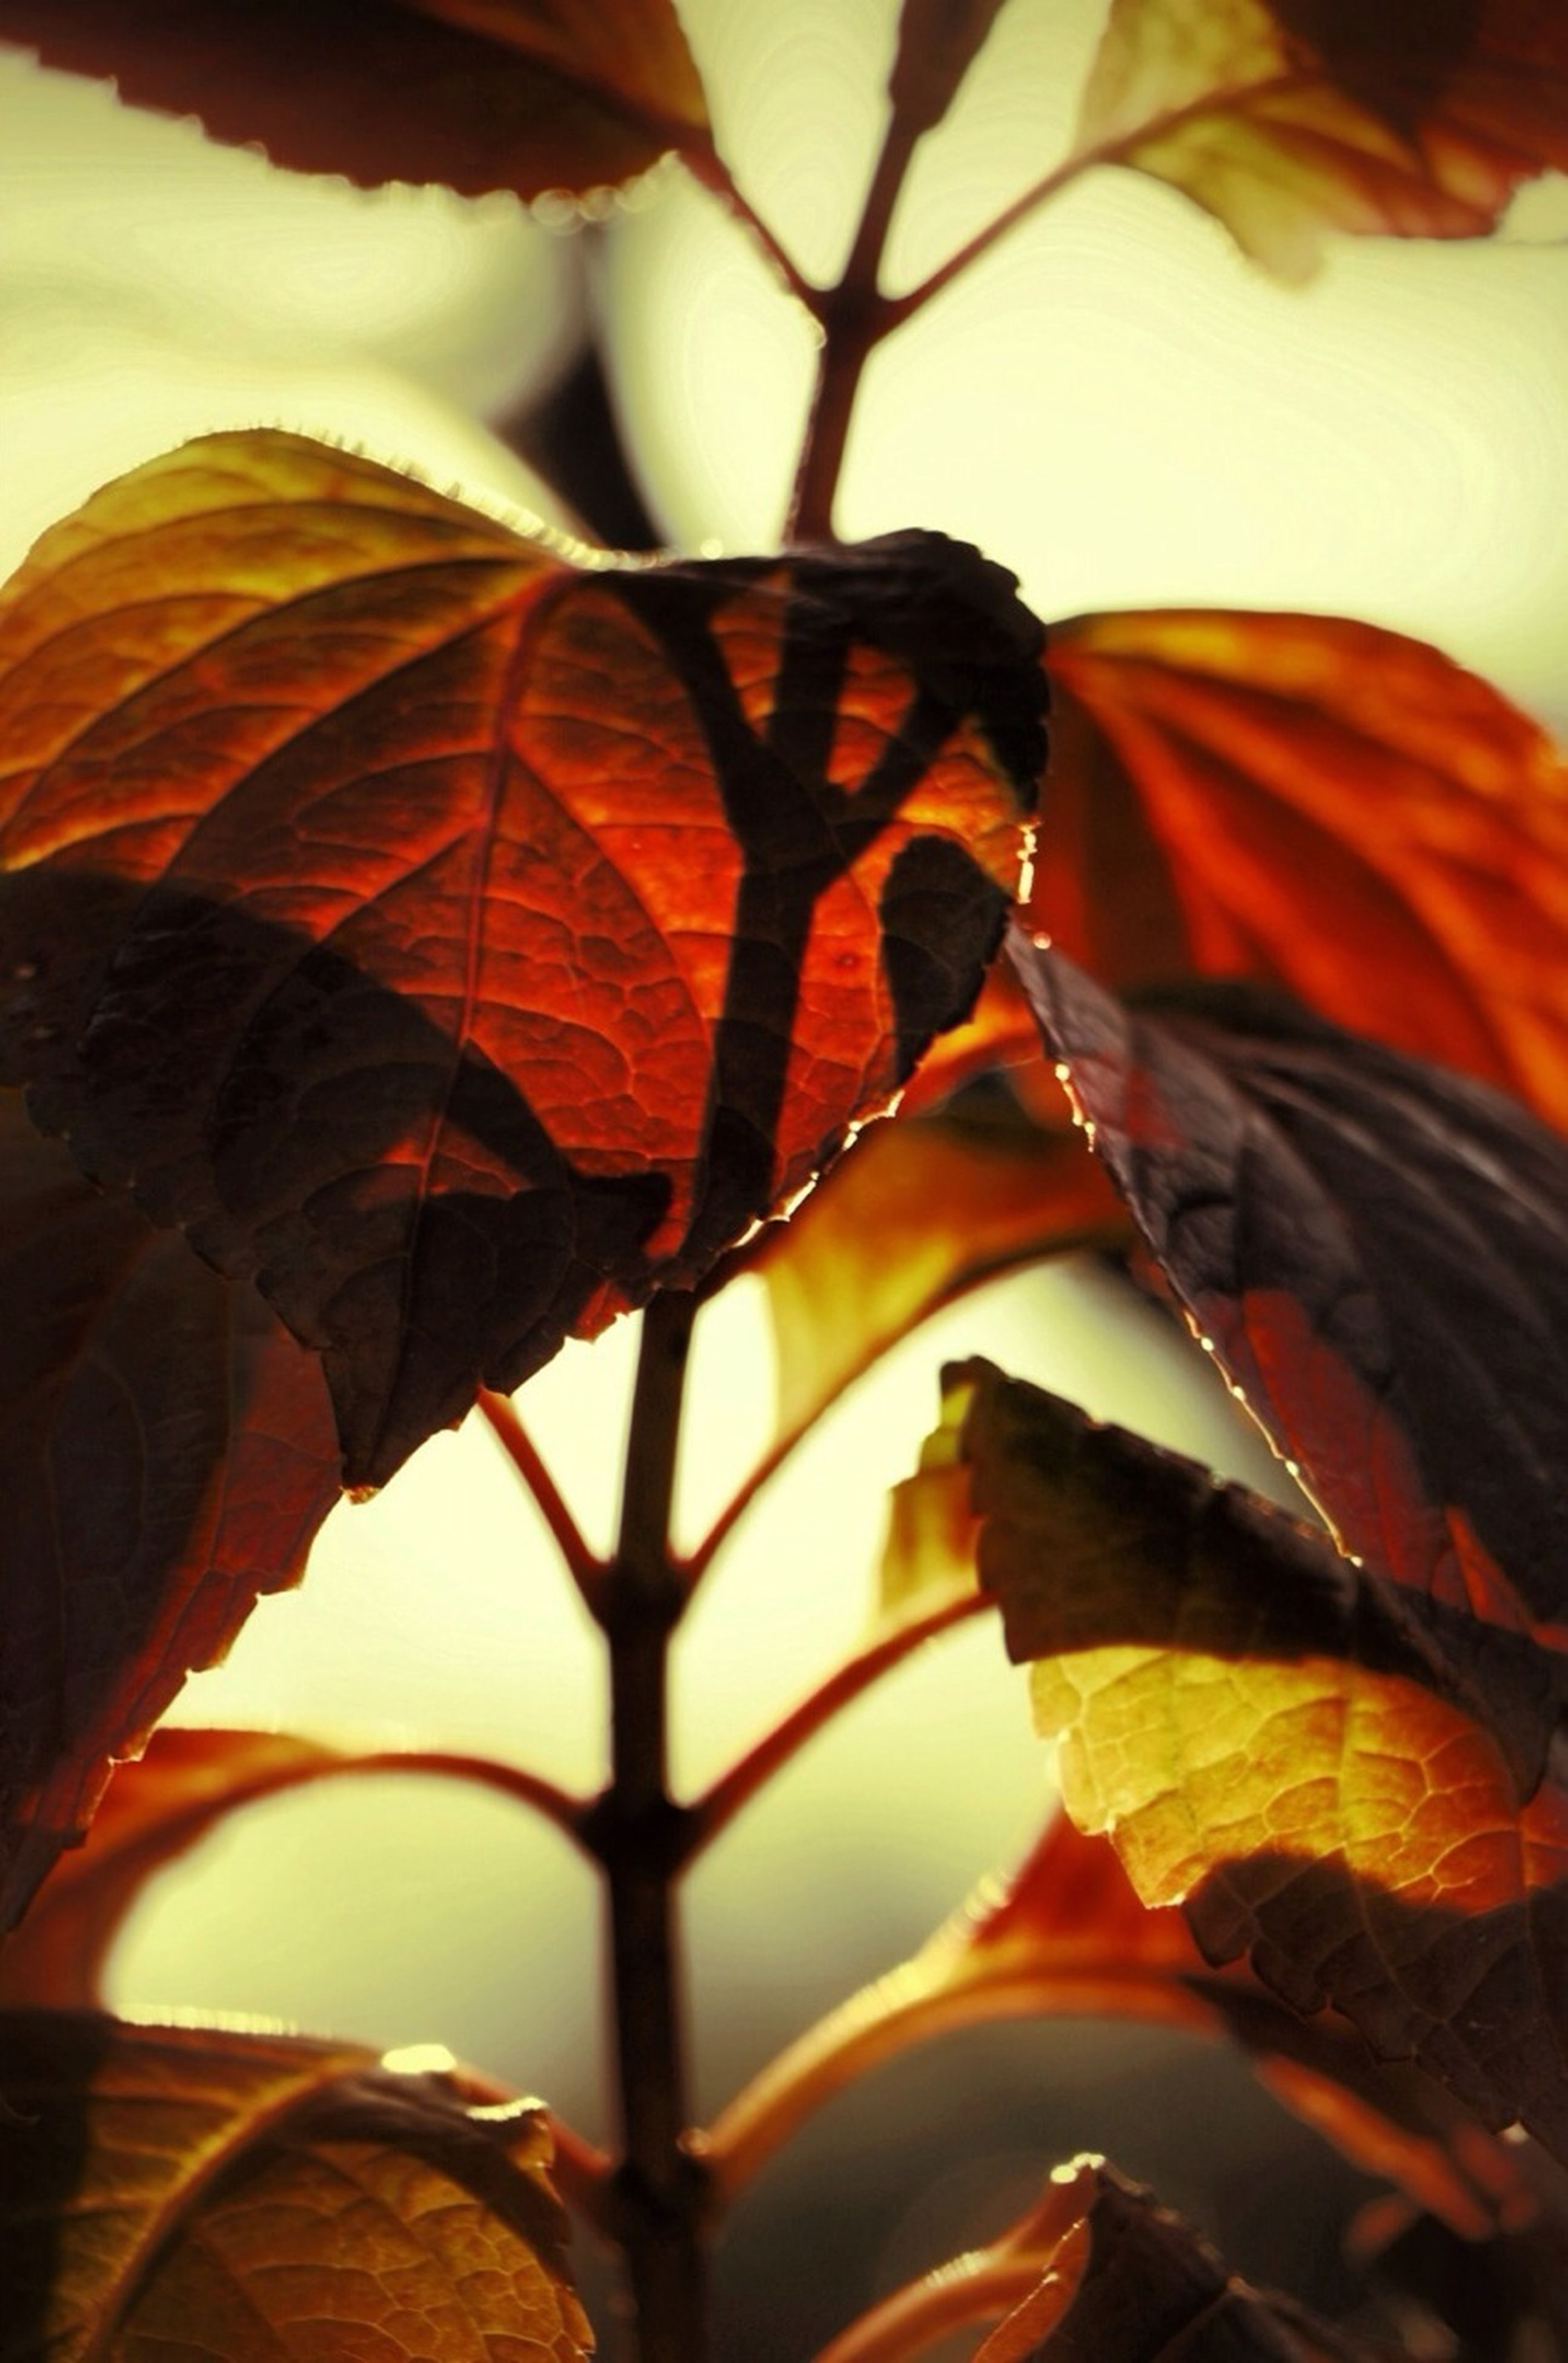 leaf, orange color, close-up, low angle view, branch, leaf vein, autumn, nature, focus on foreground, change, natural pattern, beauty in nature, sky, leaves, no people, sunlight, outdoors, tree, day, twig